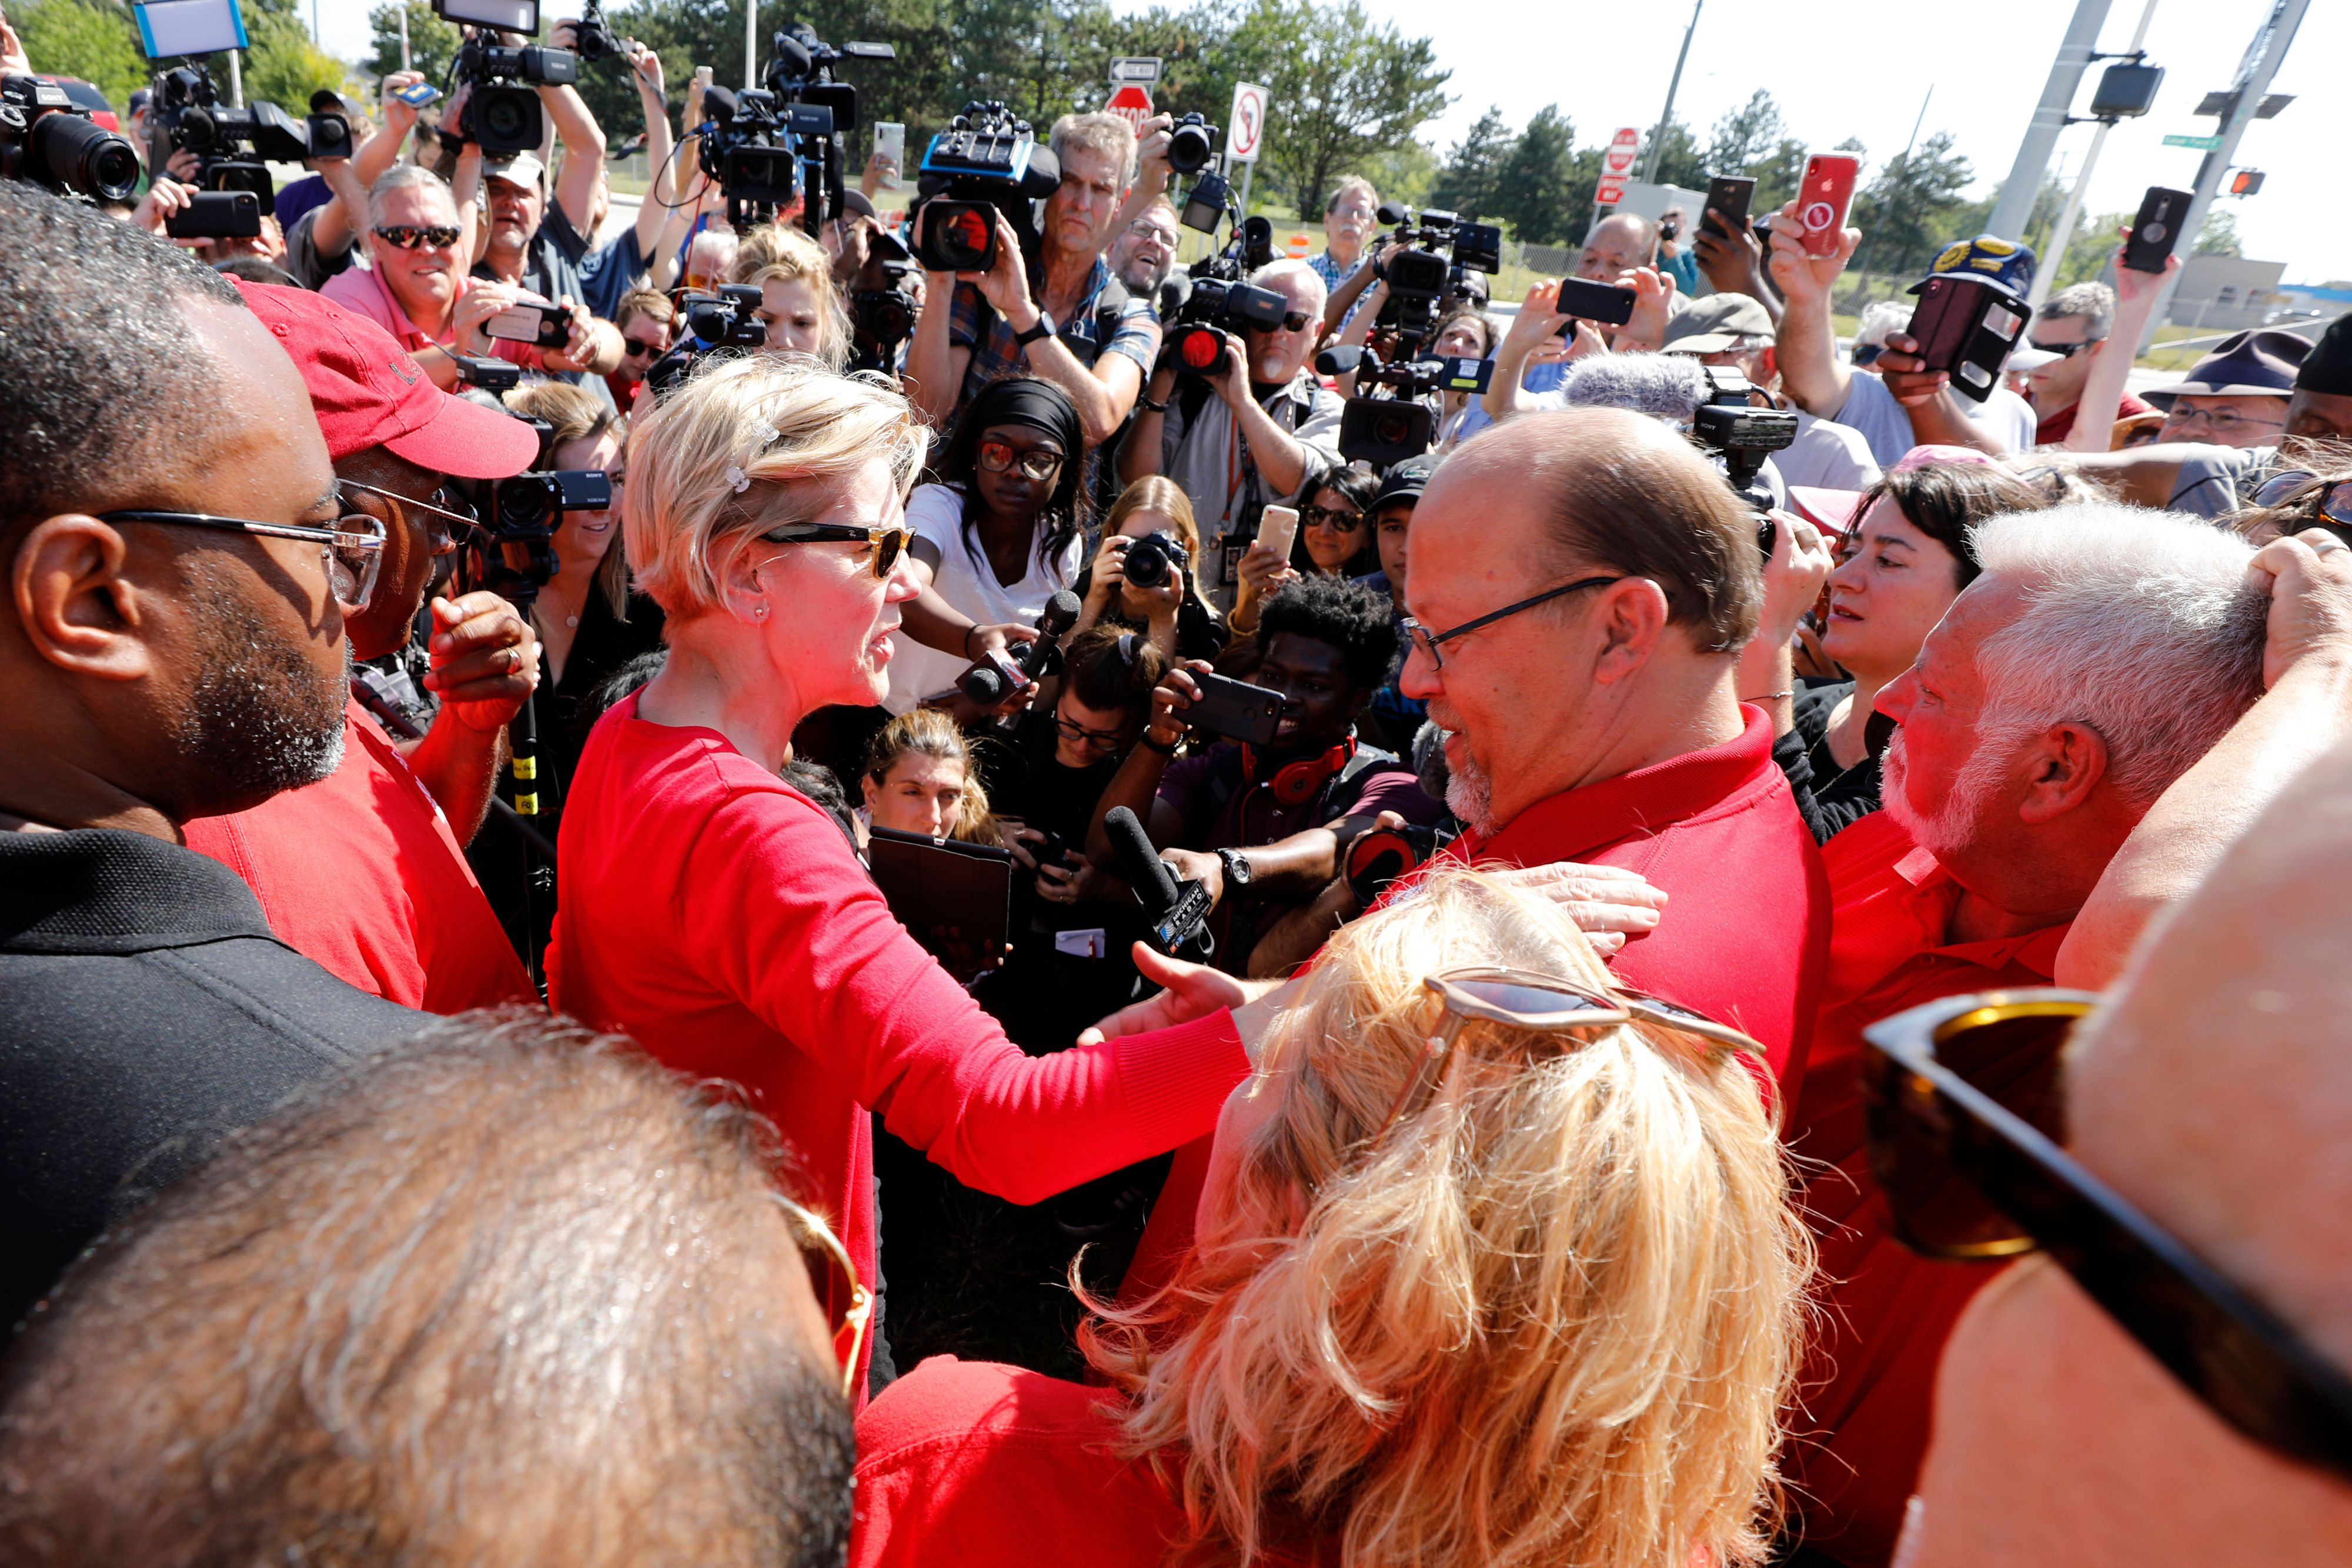 US 2020 Democratic presidential hopeful US Senator from Massachusetts Elizabeth Warren joins members of the United Auto Workers (UAW) and supporters as they picket outside of General Motors Detroit-Hamtramck Assembly in Detroit, Michigan, as they strike on September 22, 2019. - The United Auto Workers union began a nationwide strike against General Motors on September 16, with some 46,000 members walking off the job after contract talks hit an impasse. (Photo by JEFF KOWALSKY / AFP) (Photo credit should read JEFF KOWALSKY/AFP/Getty Images)